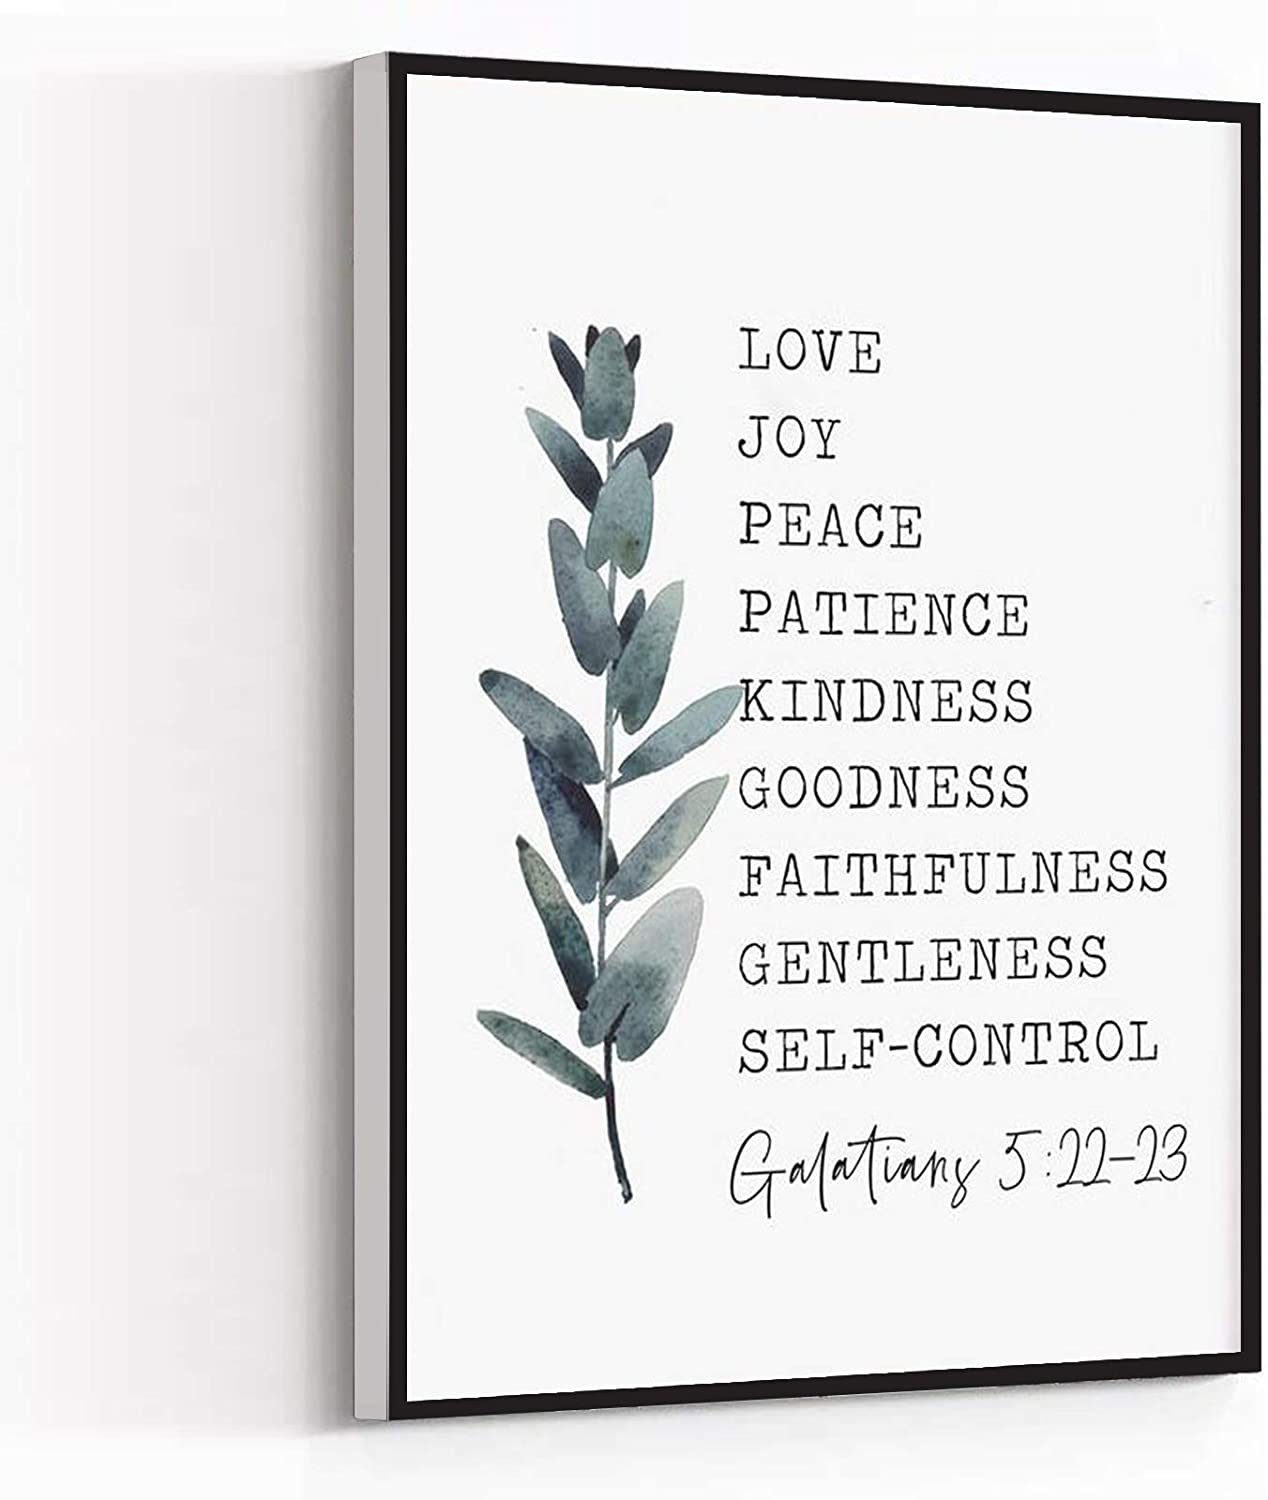 Kitchen Wall Decor,Room Decorations,Fruit of the Spirit Wall Art Printable,Fruit of the Spirit Sign,Bible Verse Sign,Farmhouse Wall Decor,Galatians 5 22 Christian gifts,16''x24'' Framed